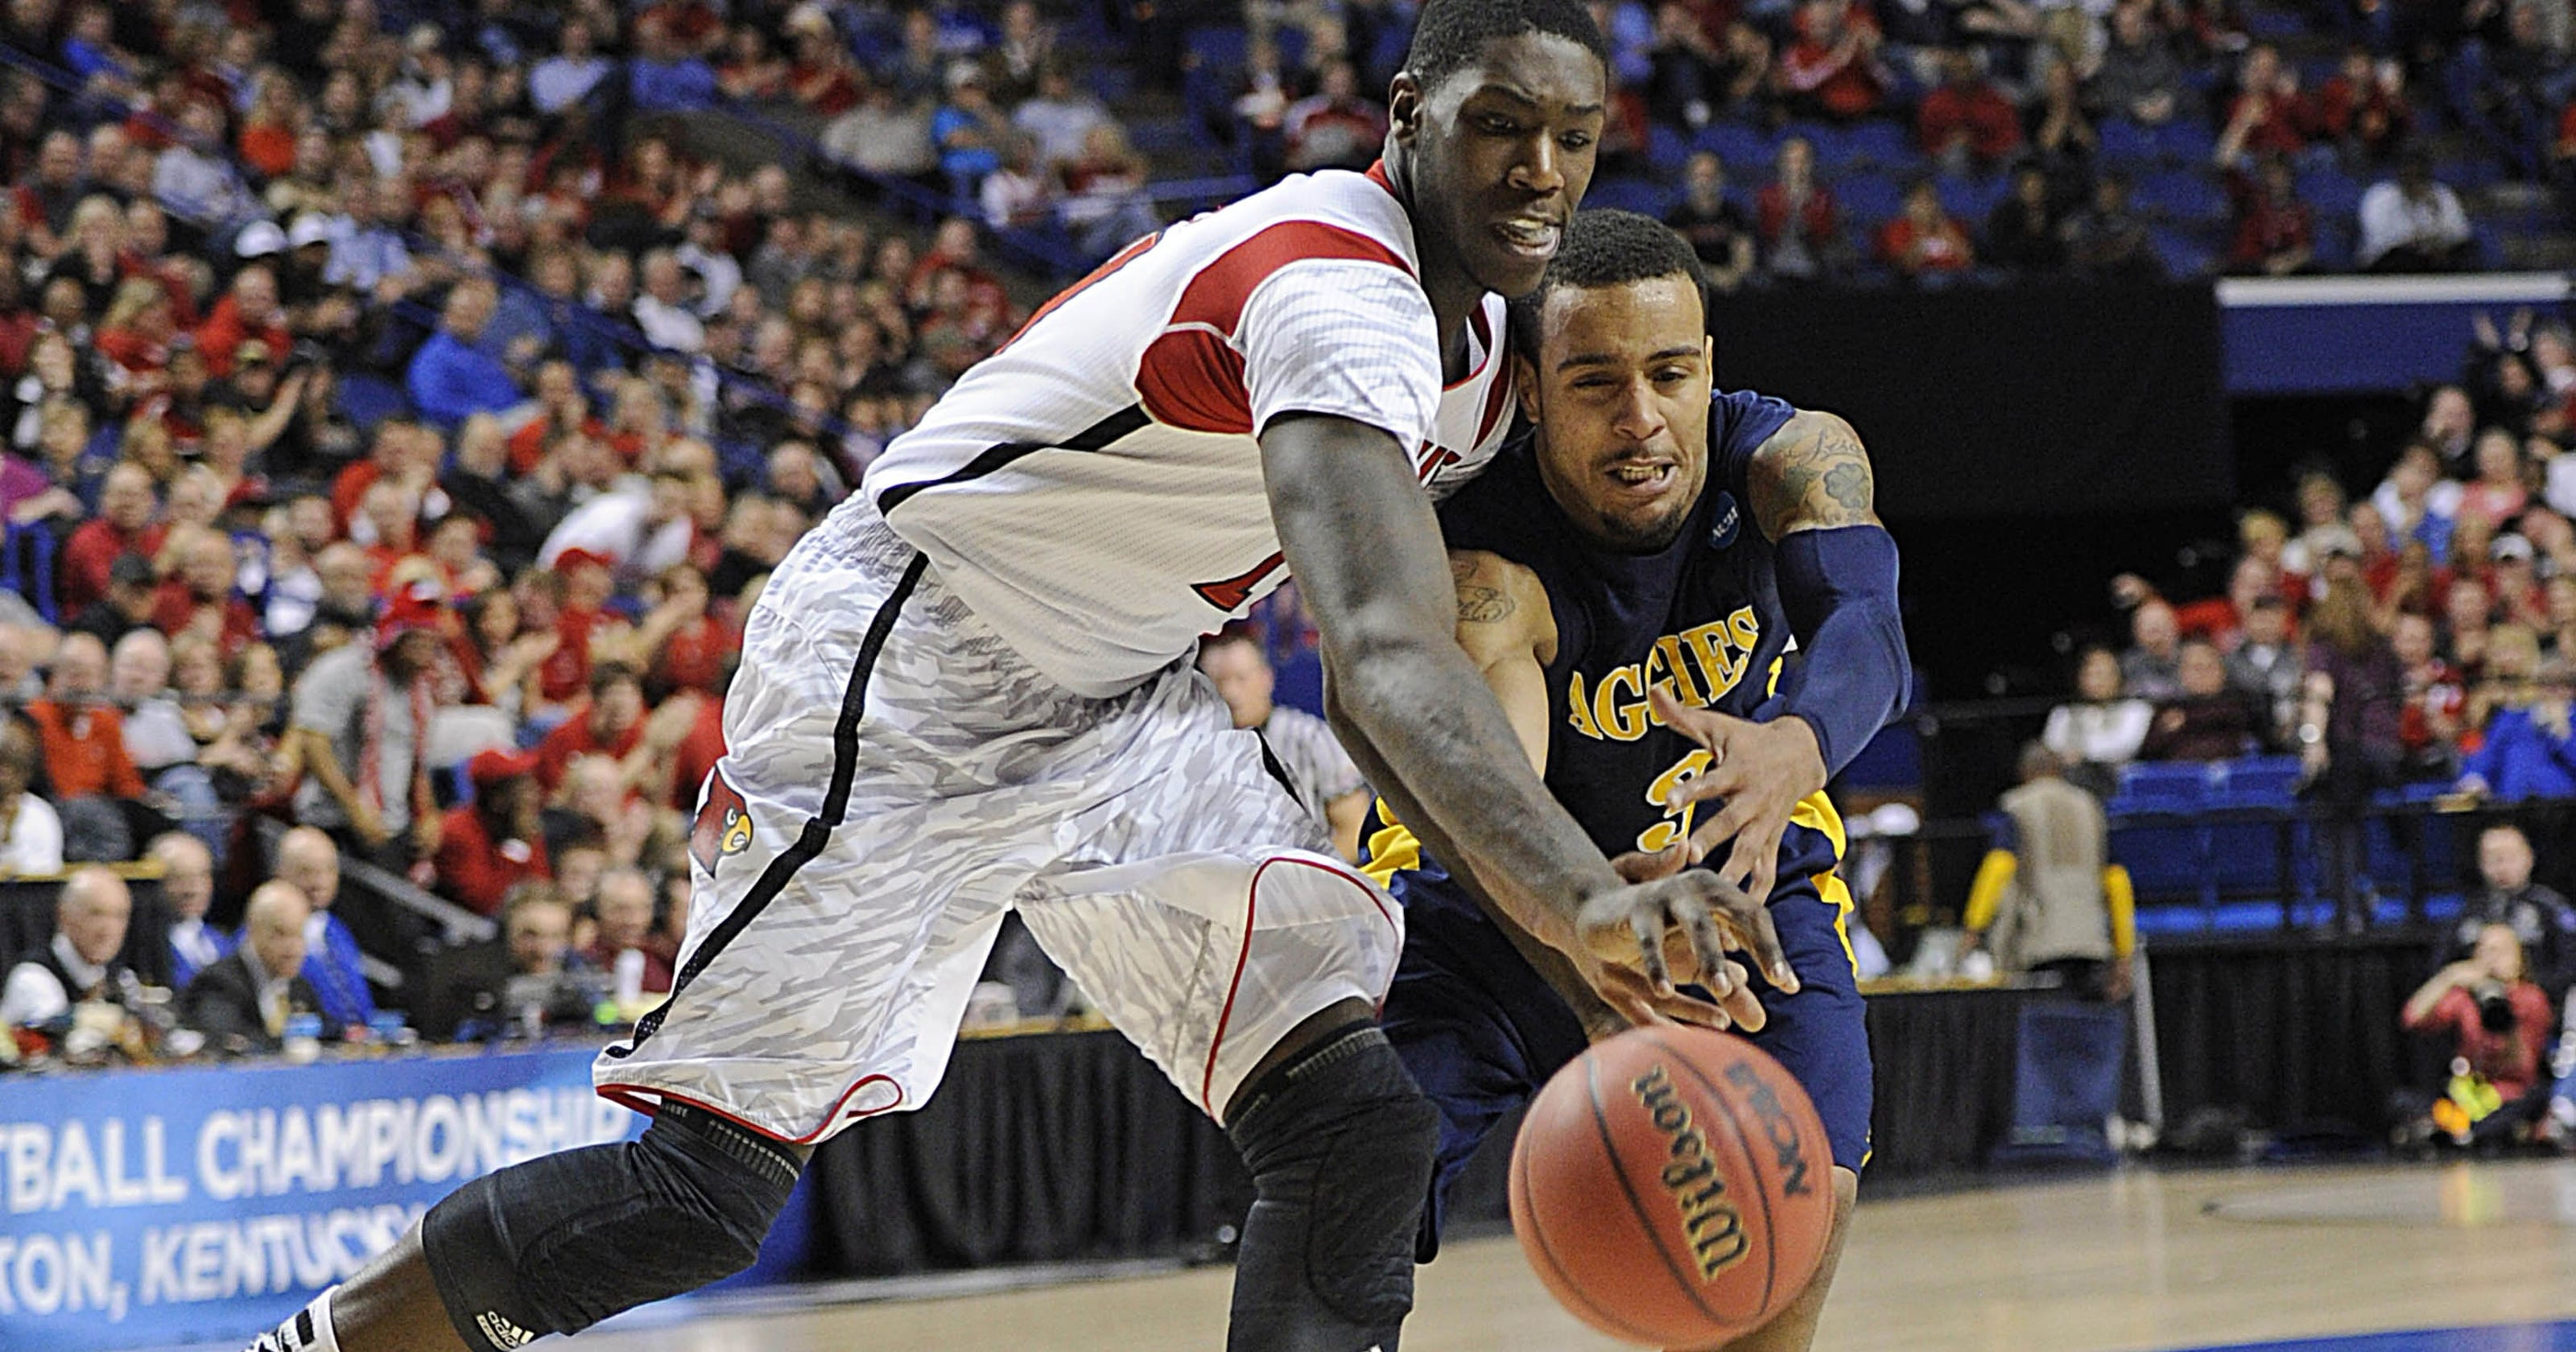 Top seed Louisville rolls to rout of North Carolina A&T